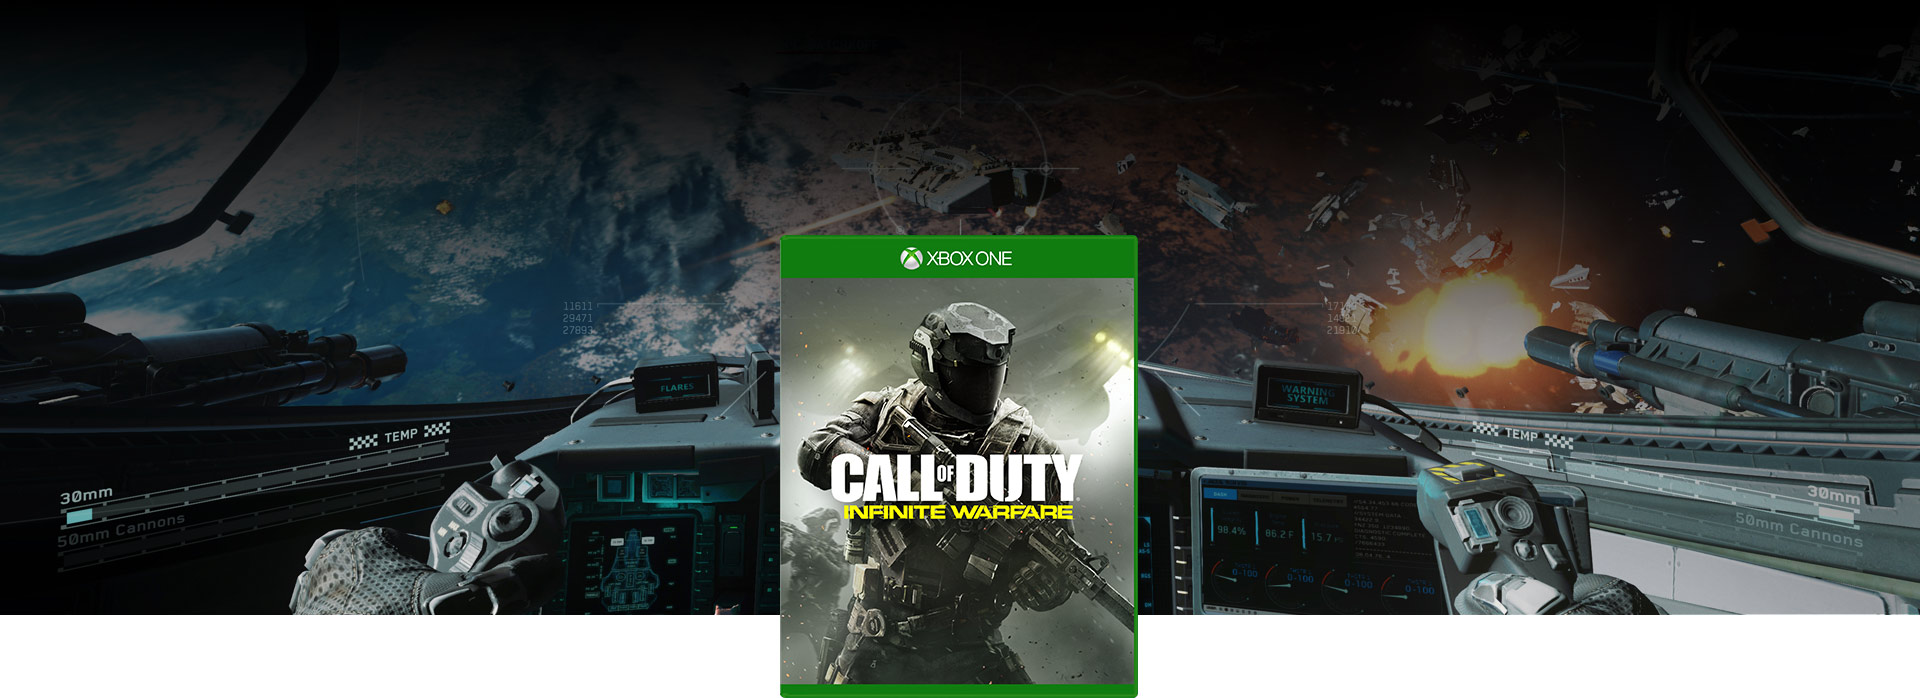 Call of Duty: Infinite Warfare – Verpackung